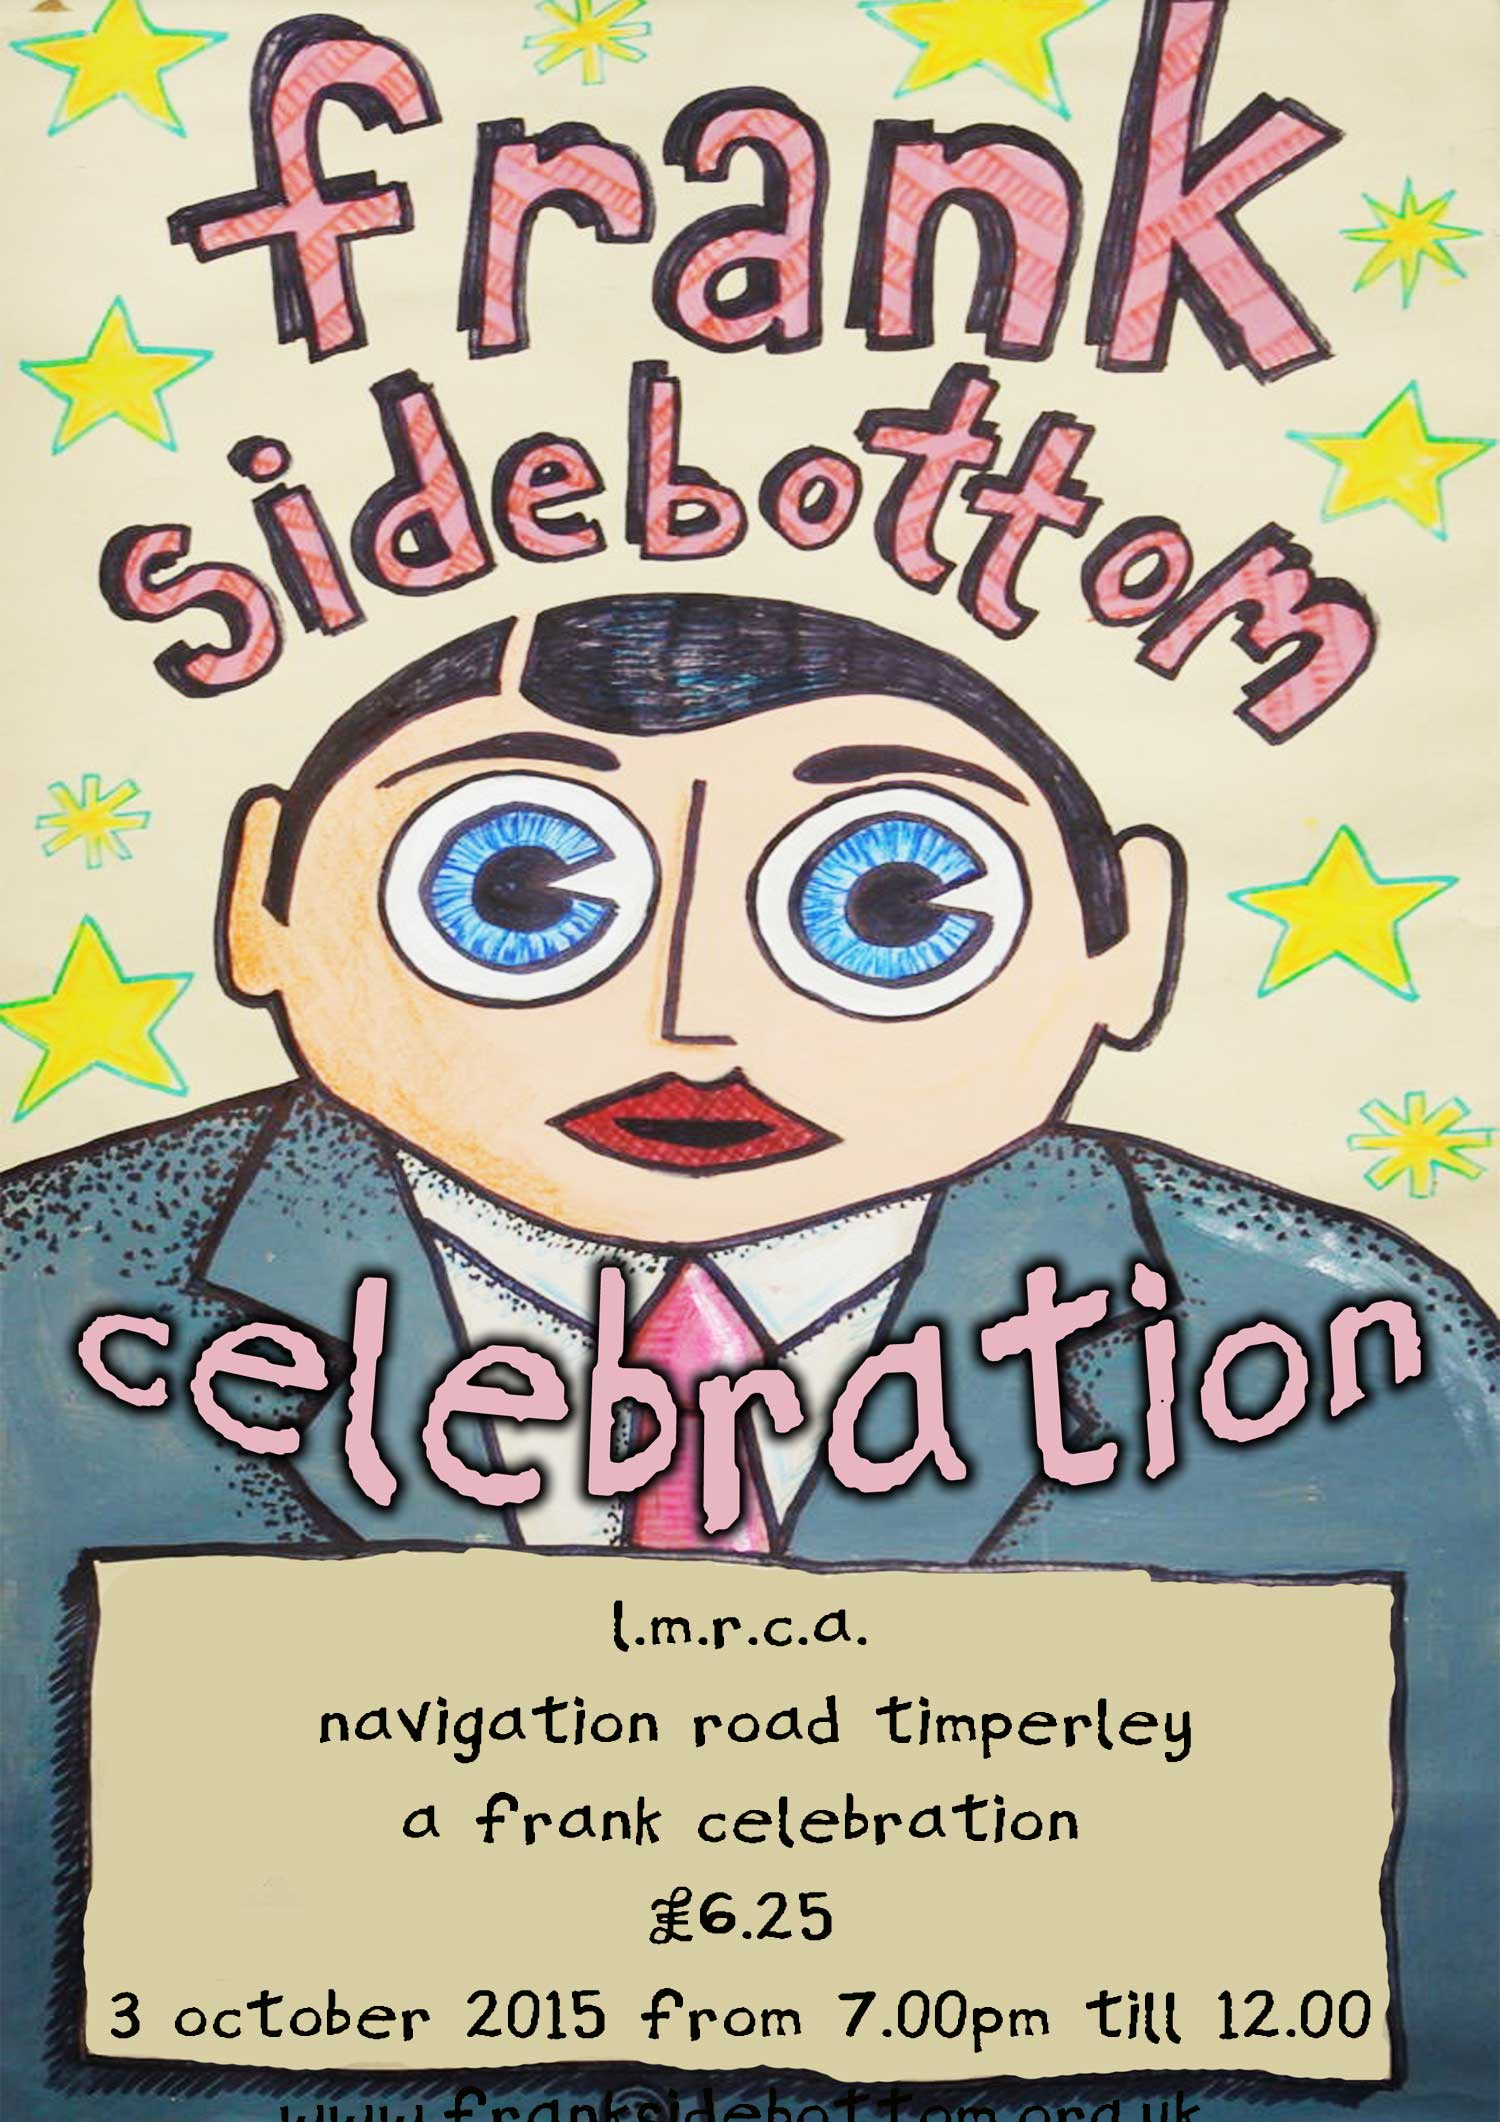 A Frank Sidebottom Celebration